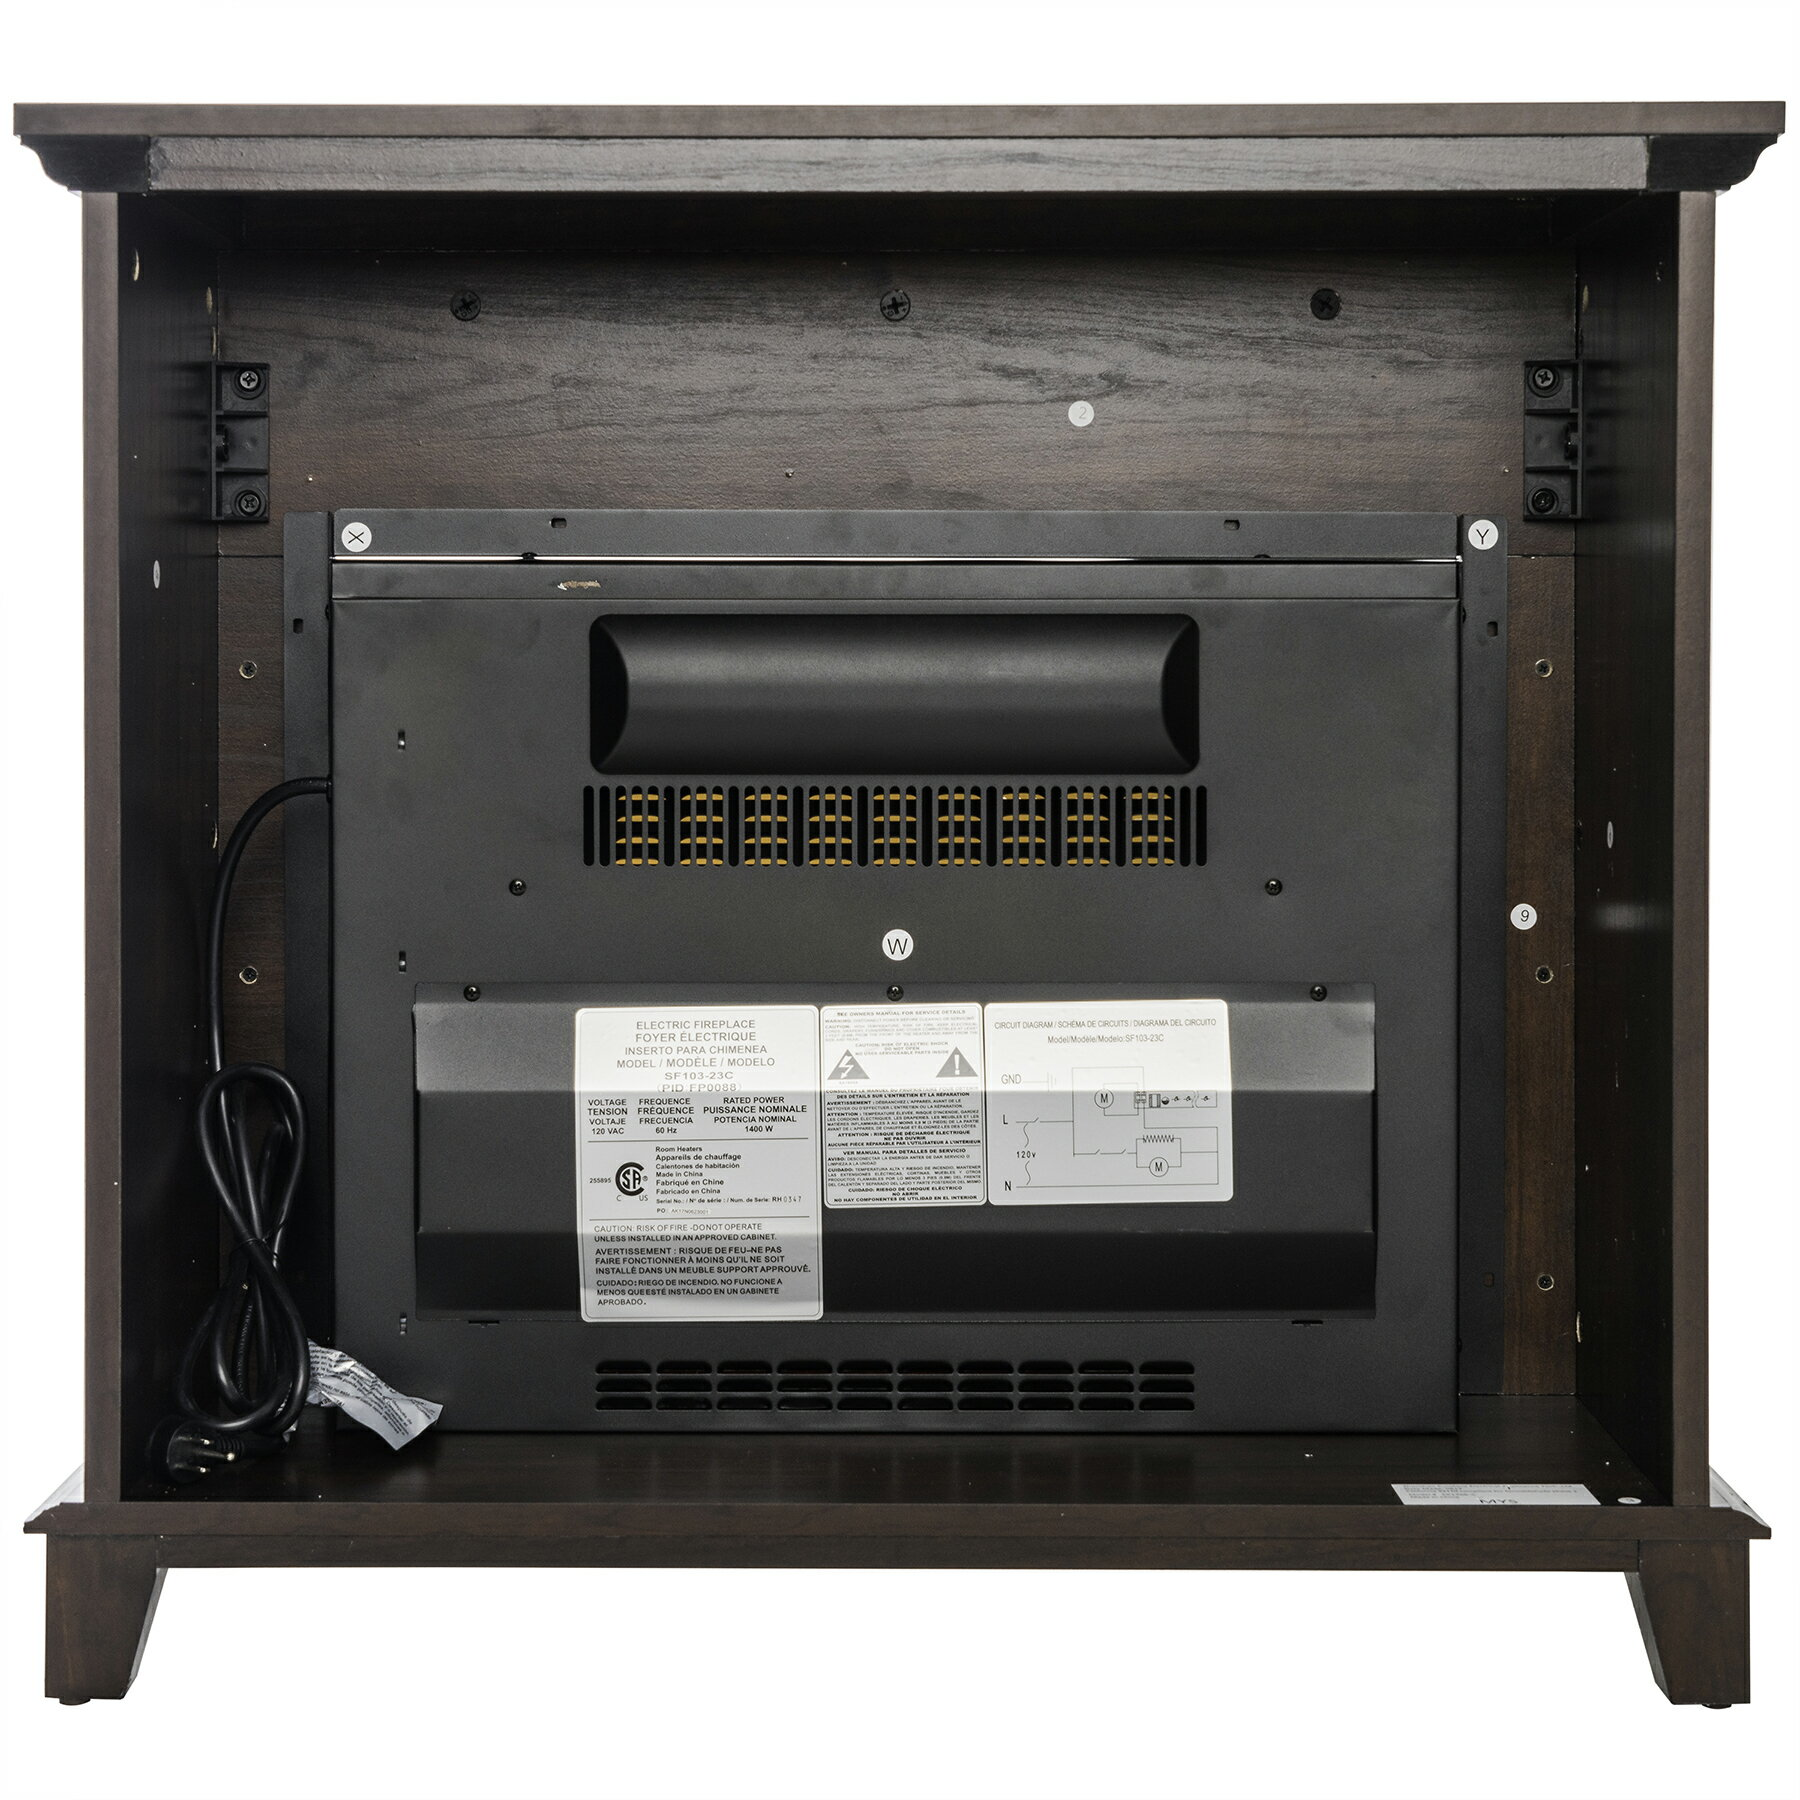 "32"" Freestanding Brown Wooden Finish Electric Fireplace Stove Heater 4"